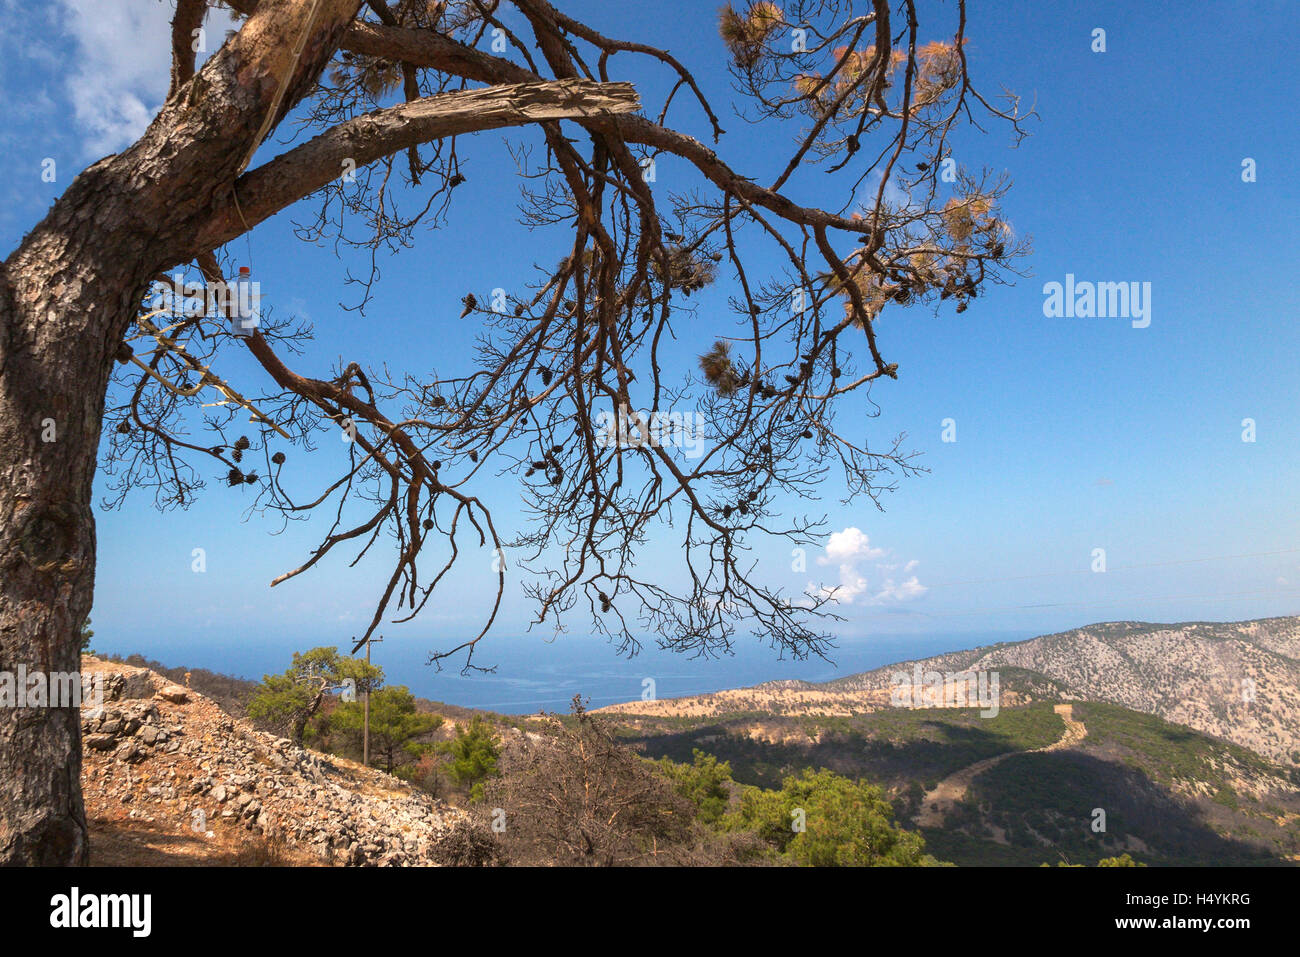 Burned trees after the great forest fire of 2012 Chios Island Greece - Stock Image